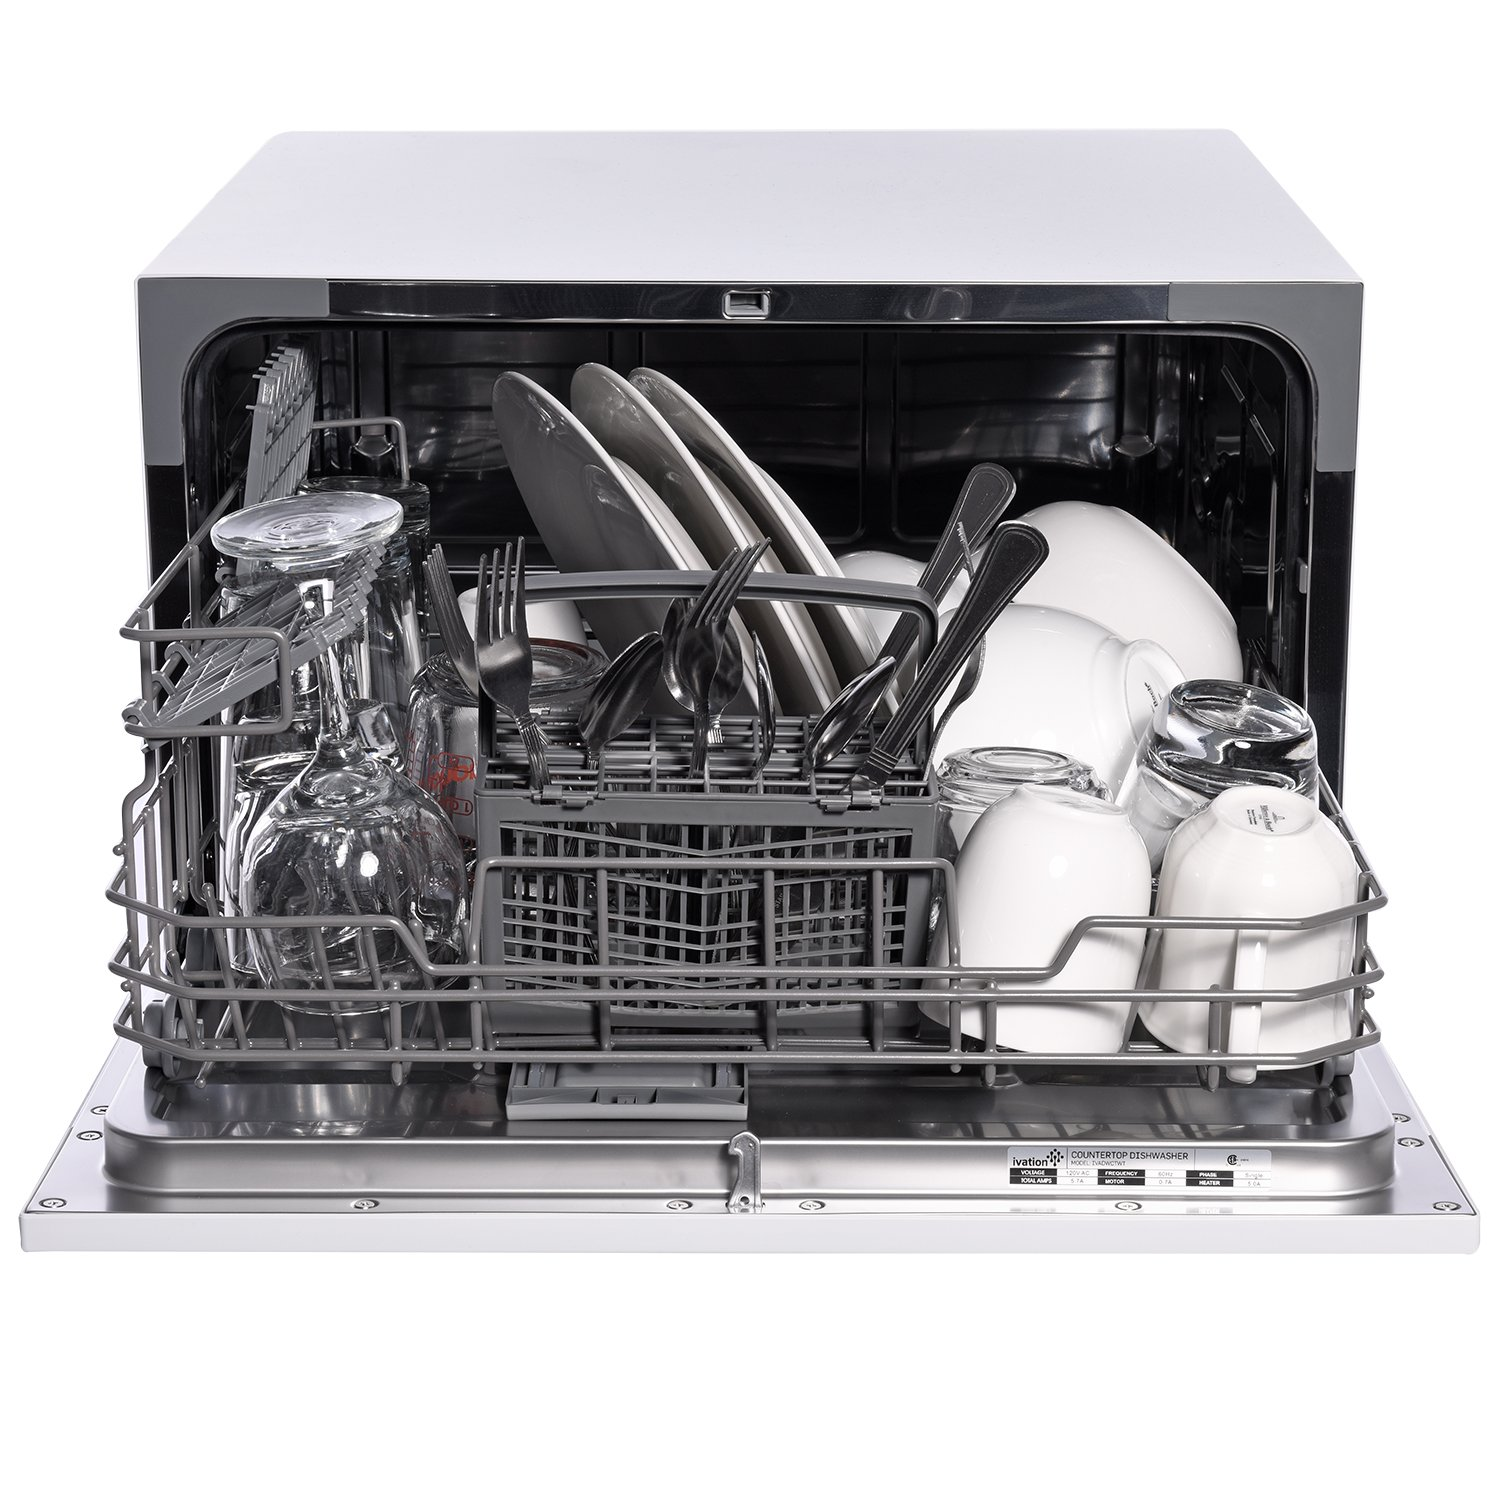 Amazon.com: Ivation Portable Dishwasher – Countertop Small Compact ...